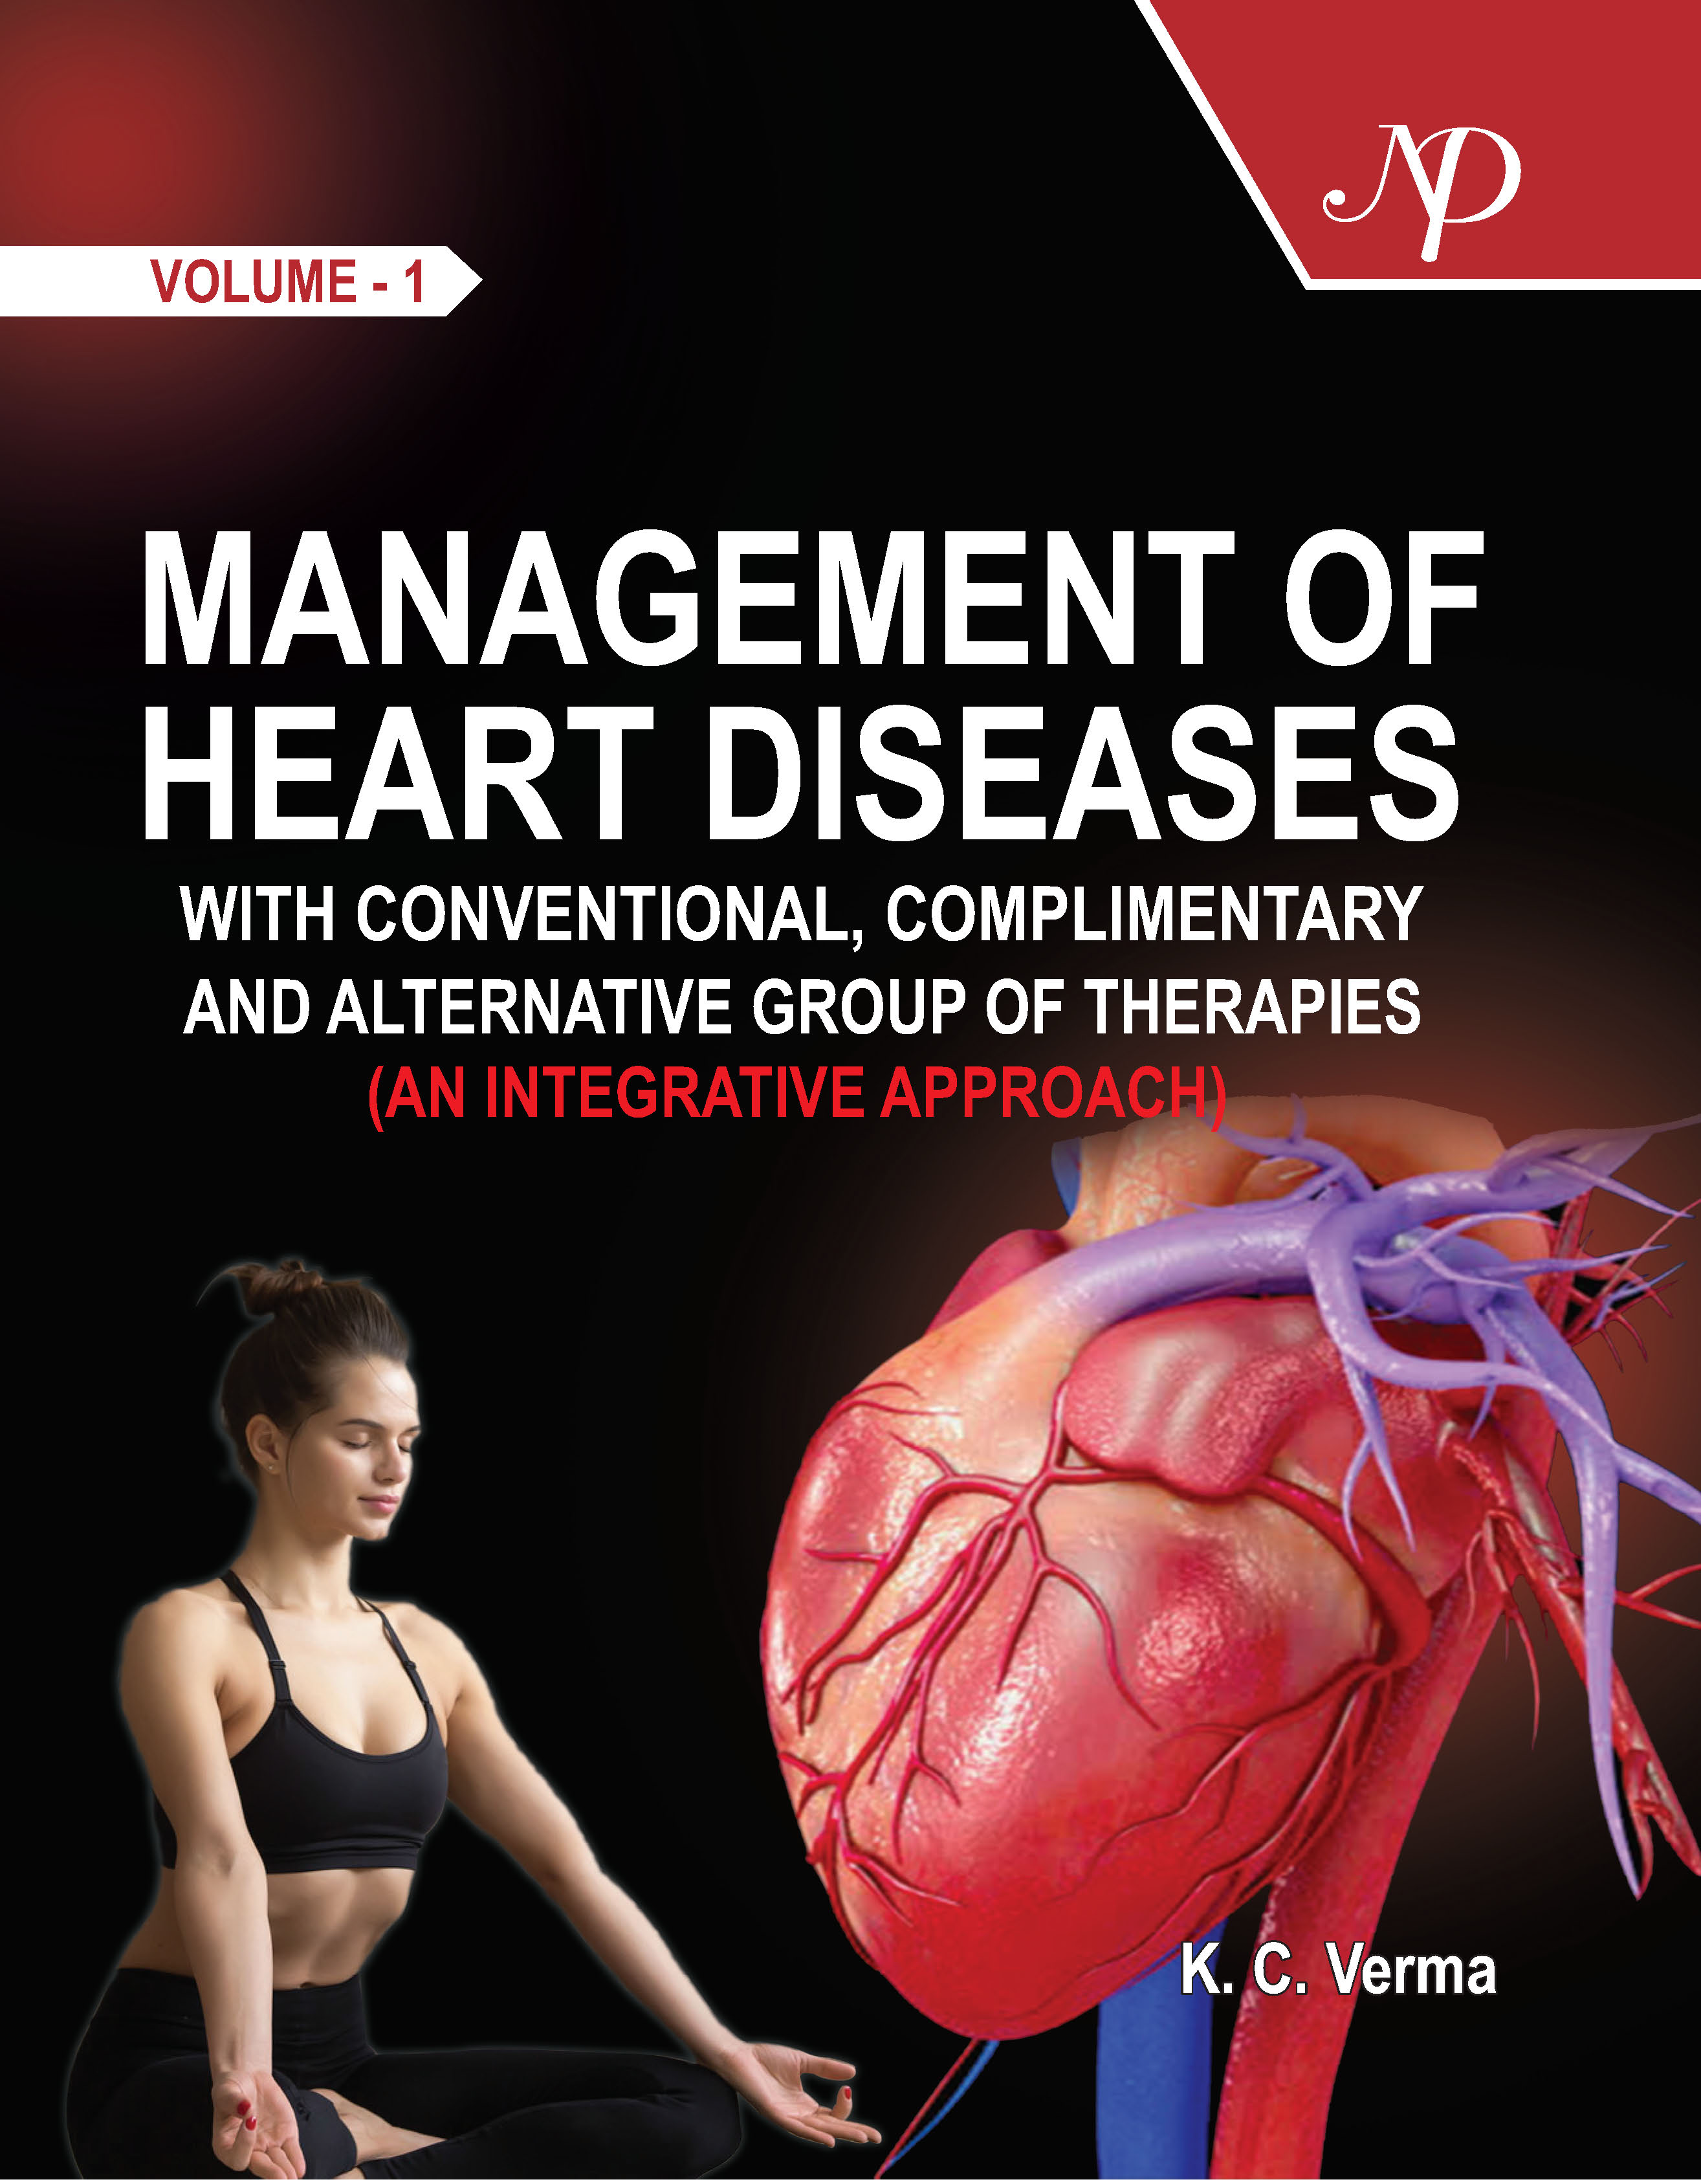 Management of Heart Diseases with Conventional, Complimentary and Alternative Group of Therapies (An Integrative Approach) Volume - I